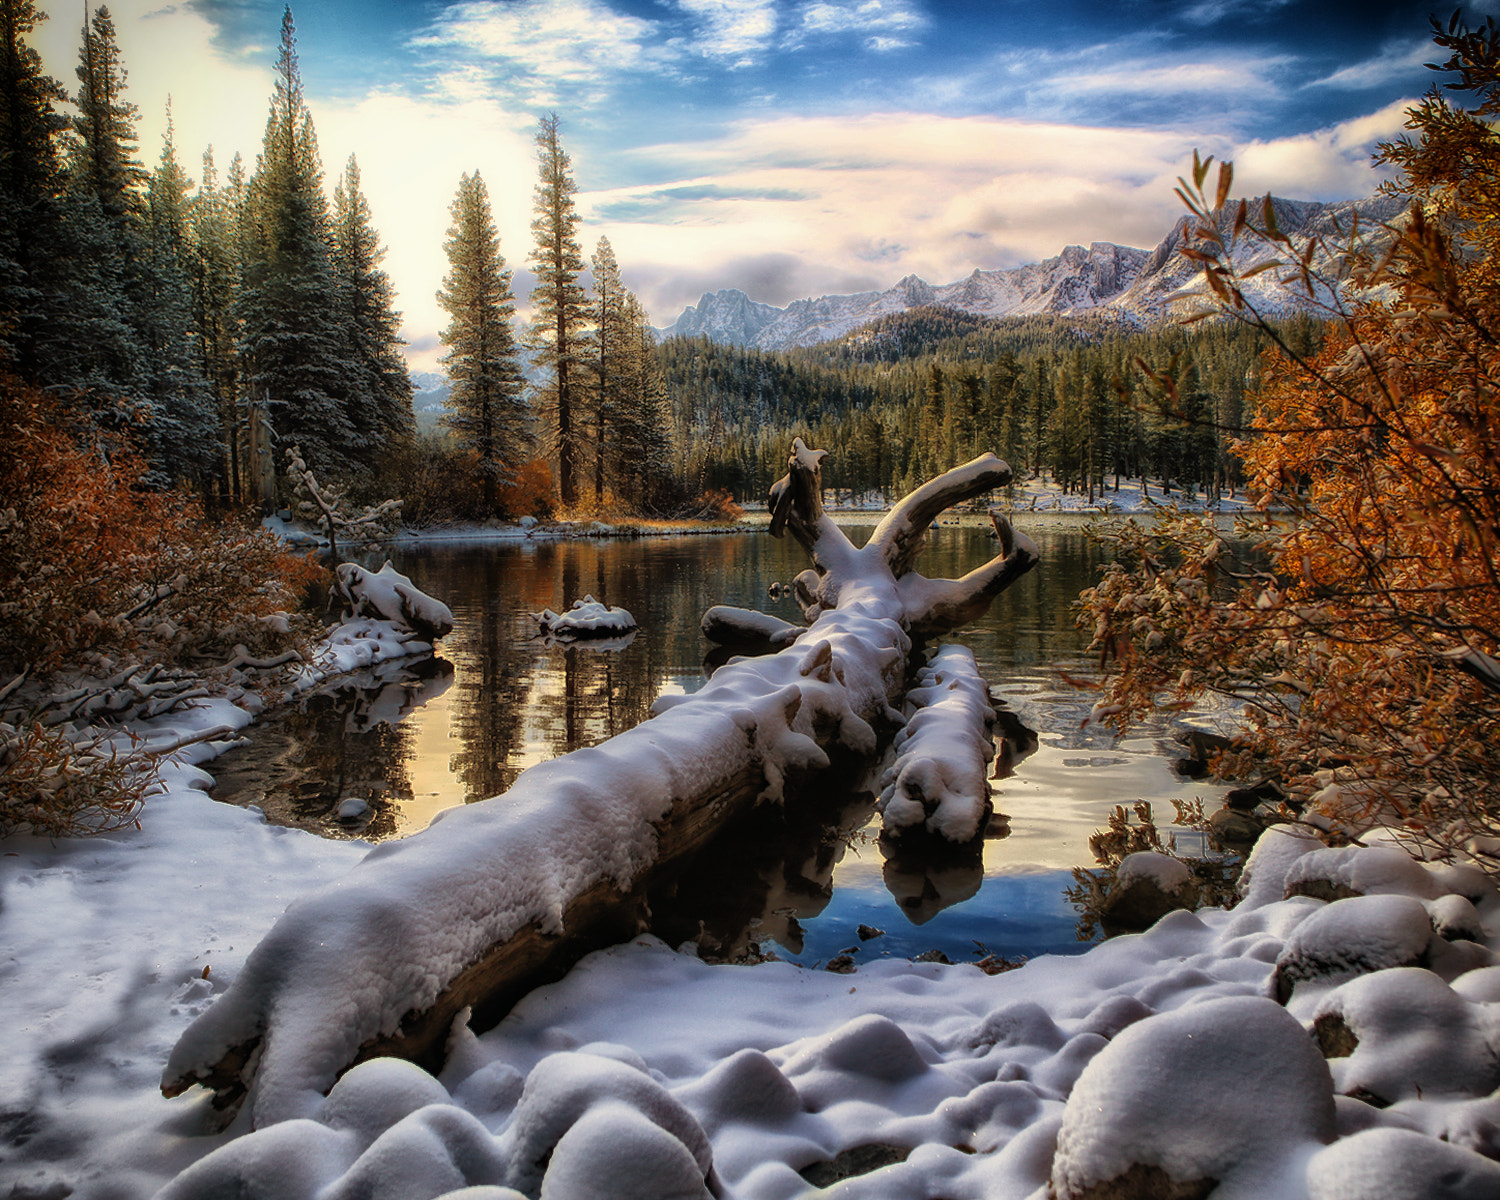 Photograph October Snow in the Sierras by Jack Azua on 500px